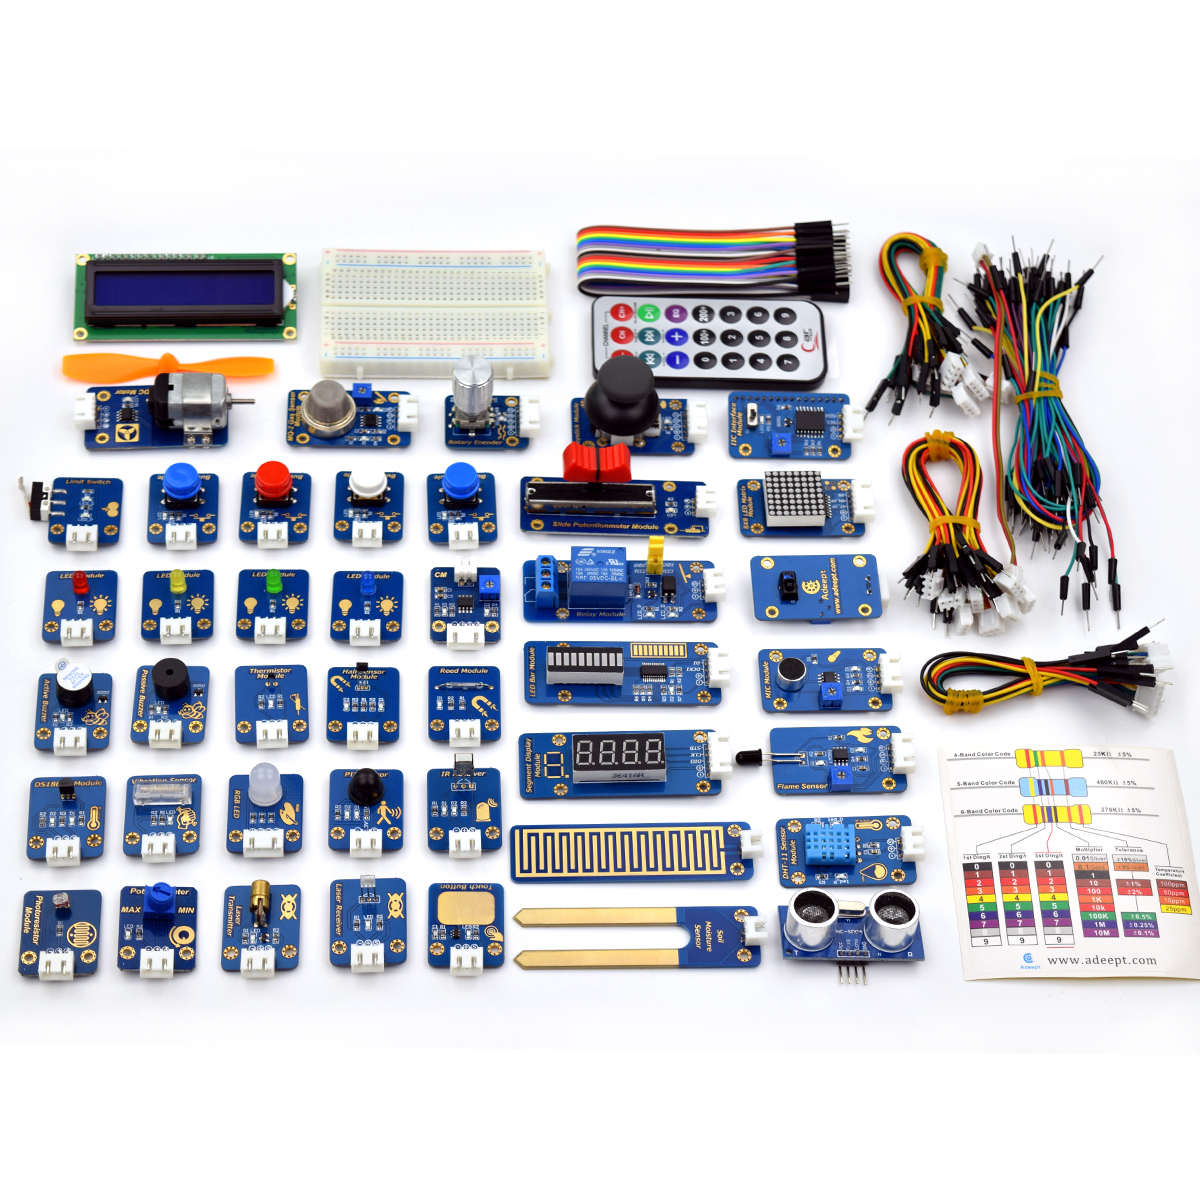 Adeept modules ultimate sensor kit for arduino uno r